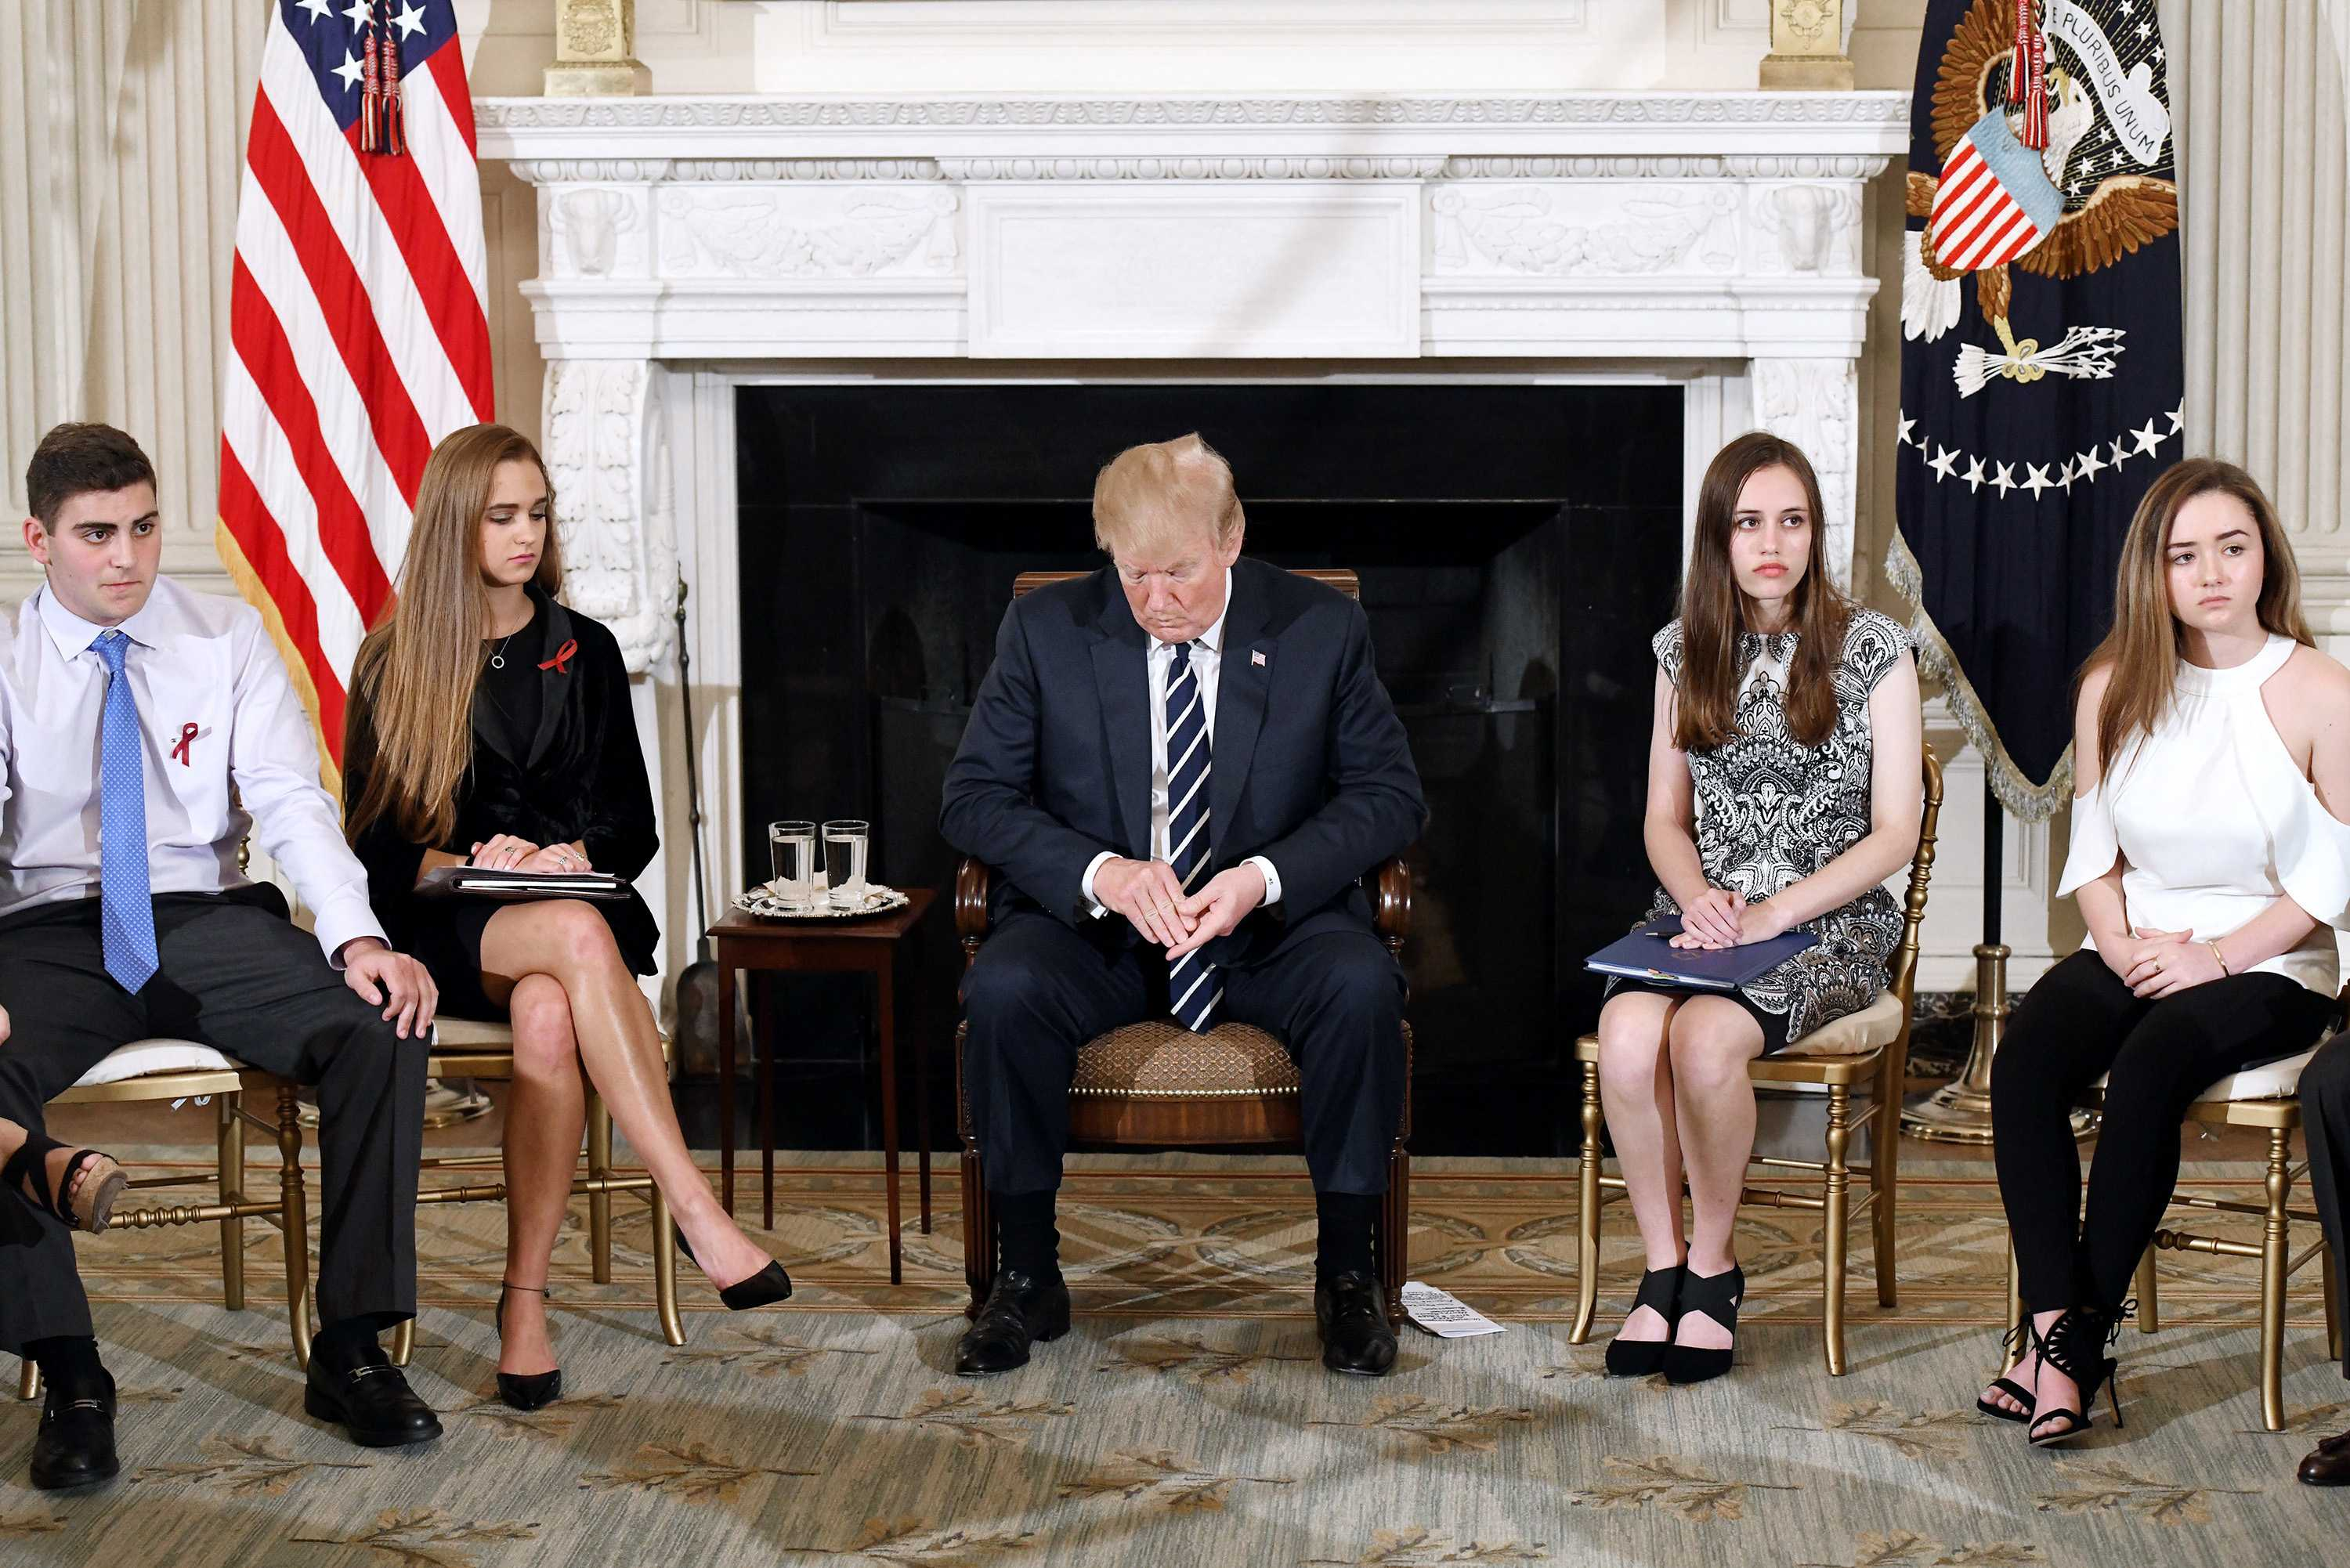 Trump holds discussion with Parkland students on gun control